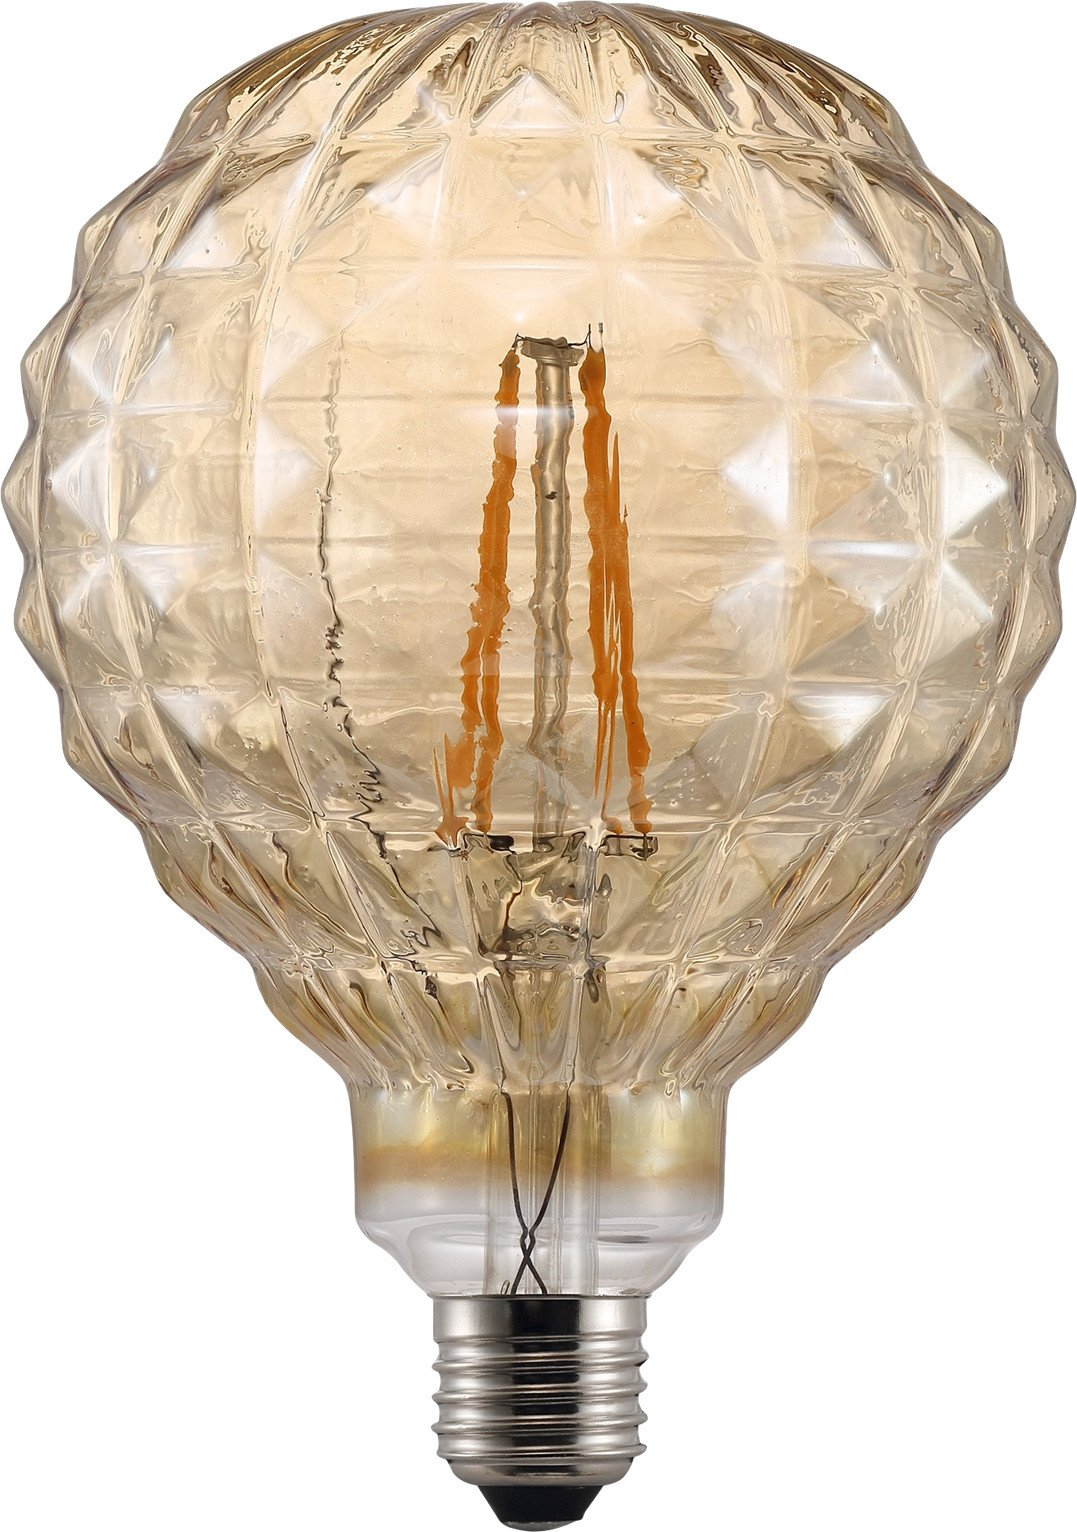 E27 Avra Square 2W Light bulbs, Nordlux